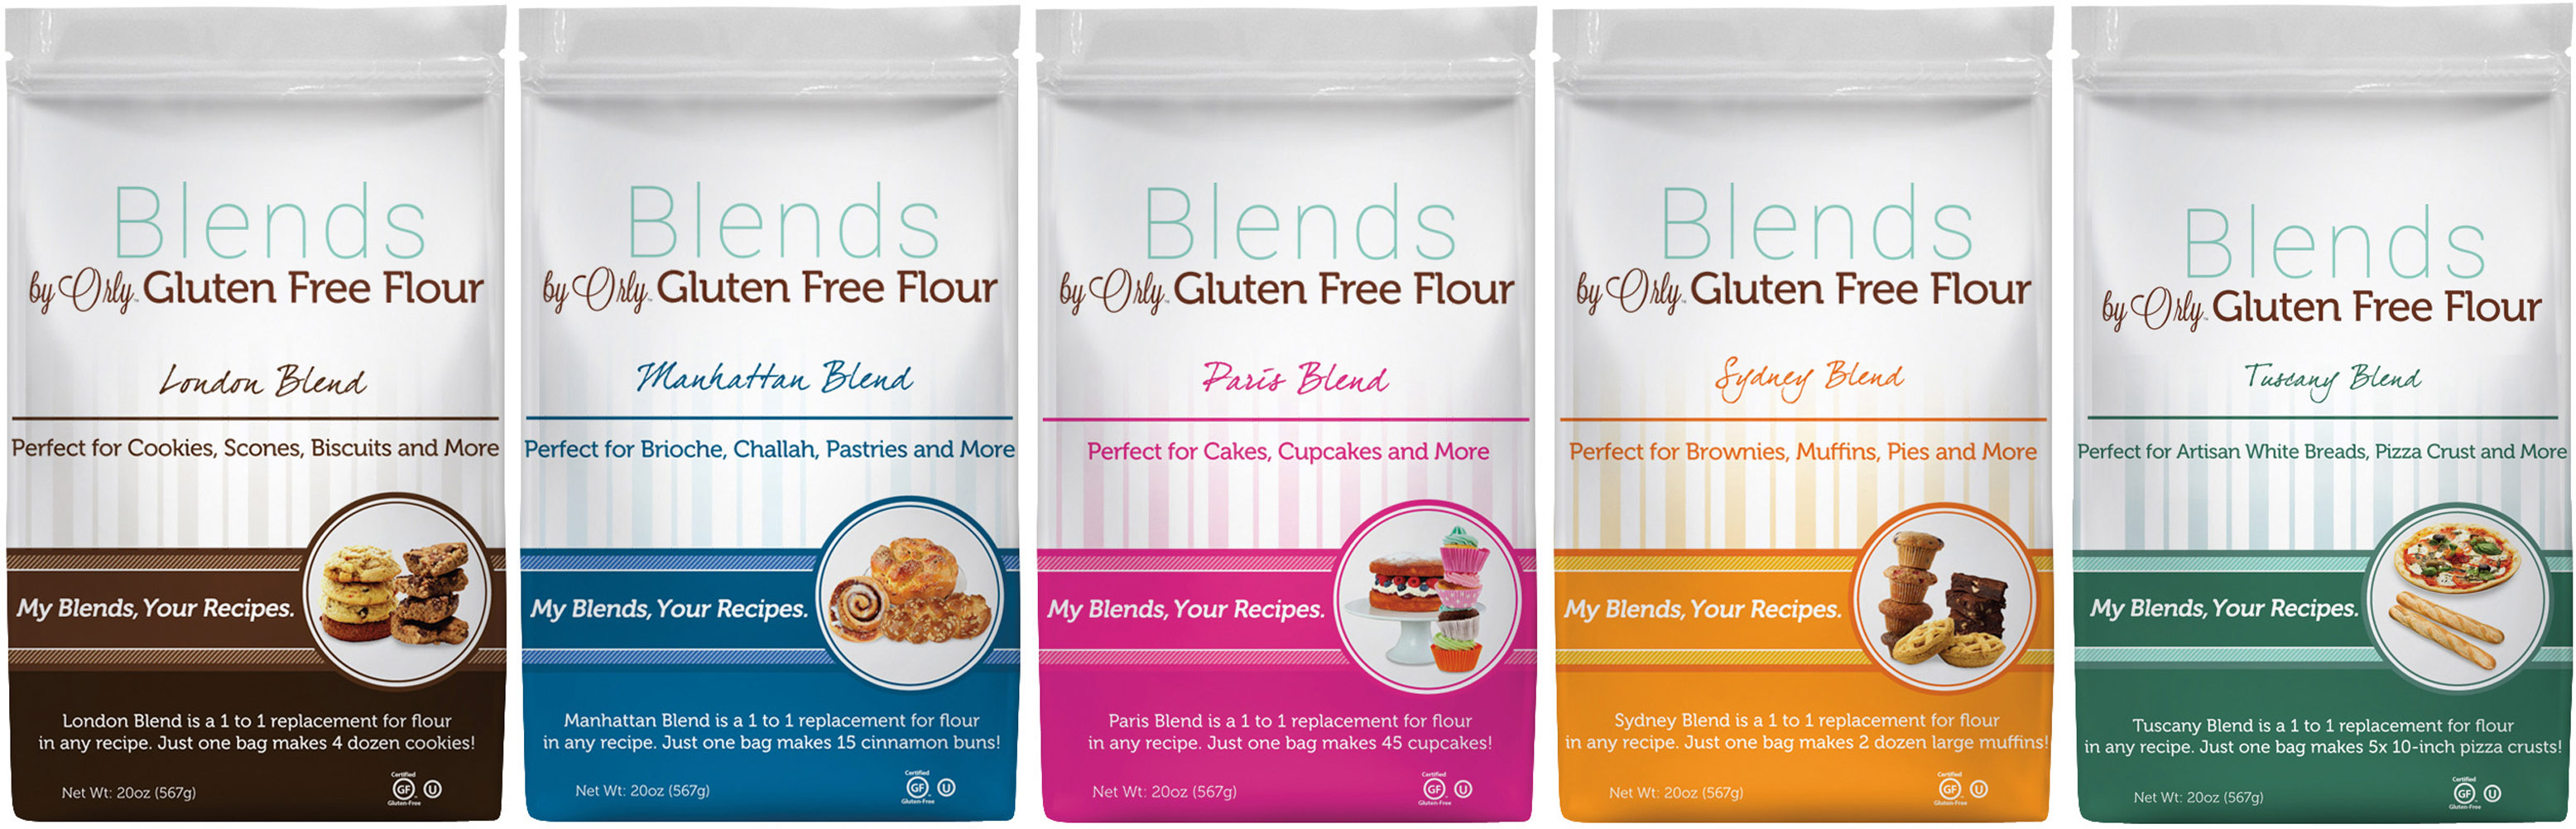 Blends by Orly Gluten Free Flour Variety Pack - 5 Bags 012776